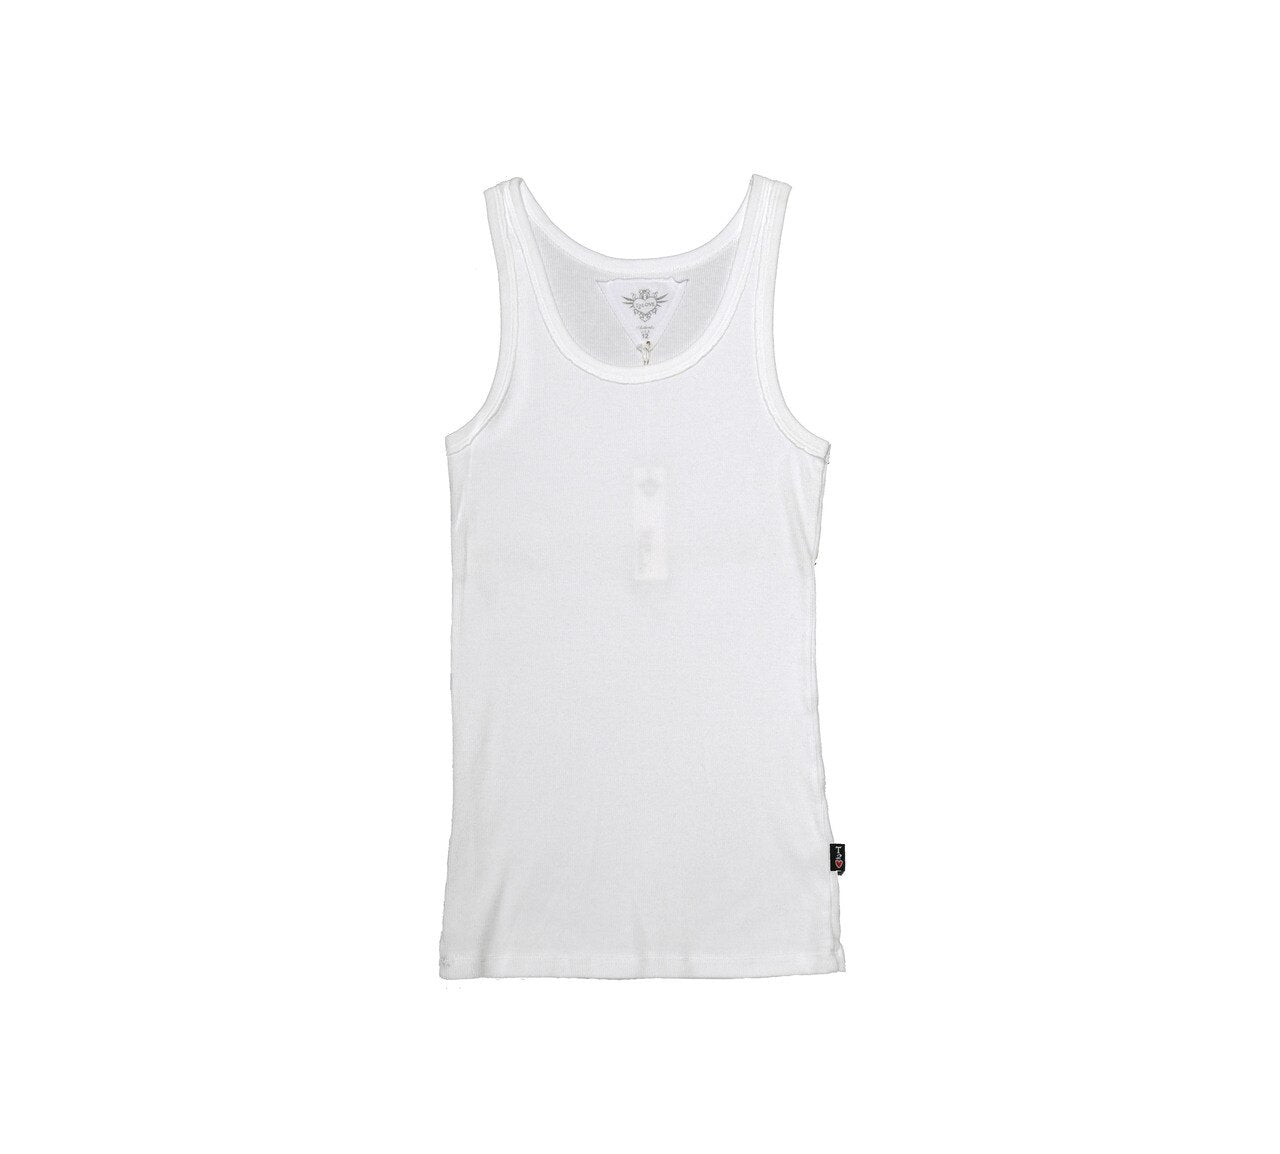 T2LOVE 2X1 RIB MODAL BEATER TANK TOP - WHITE